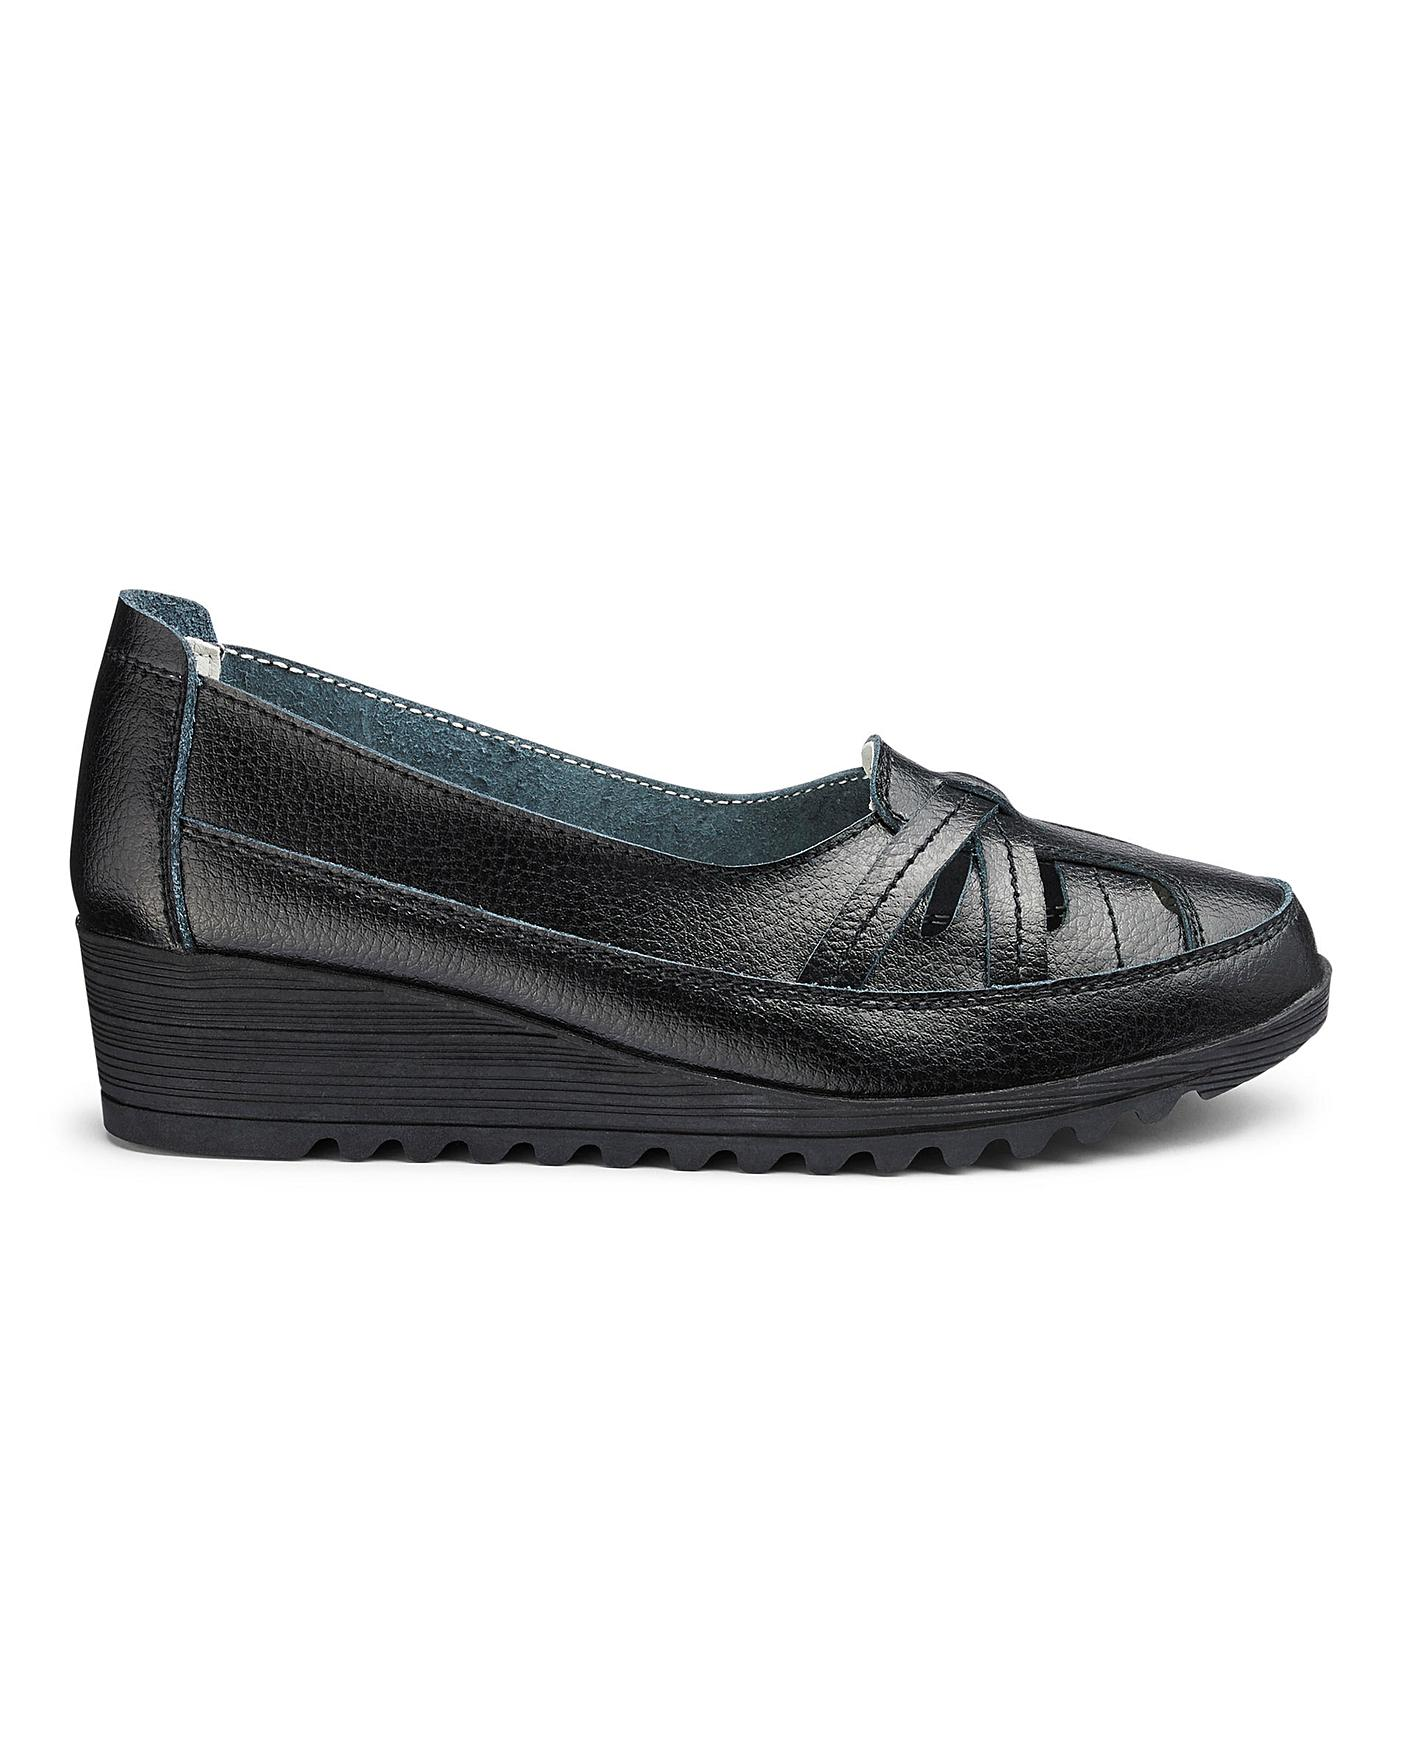 Leather Wedge Shoes EEE Fit | J D Williams